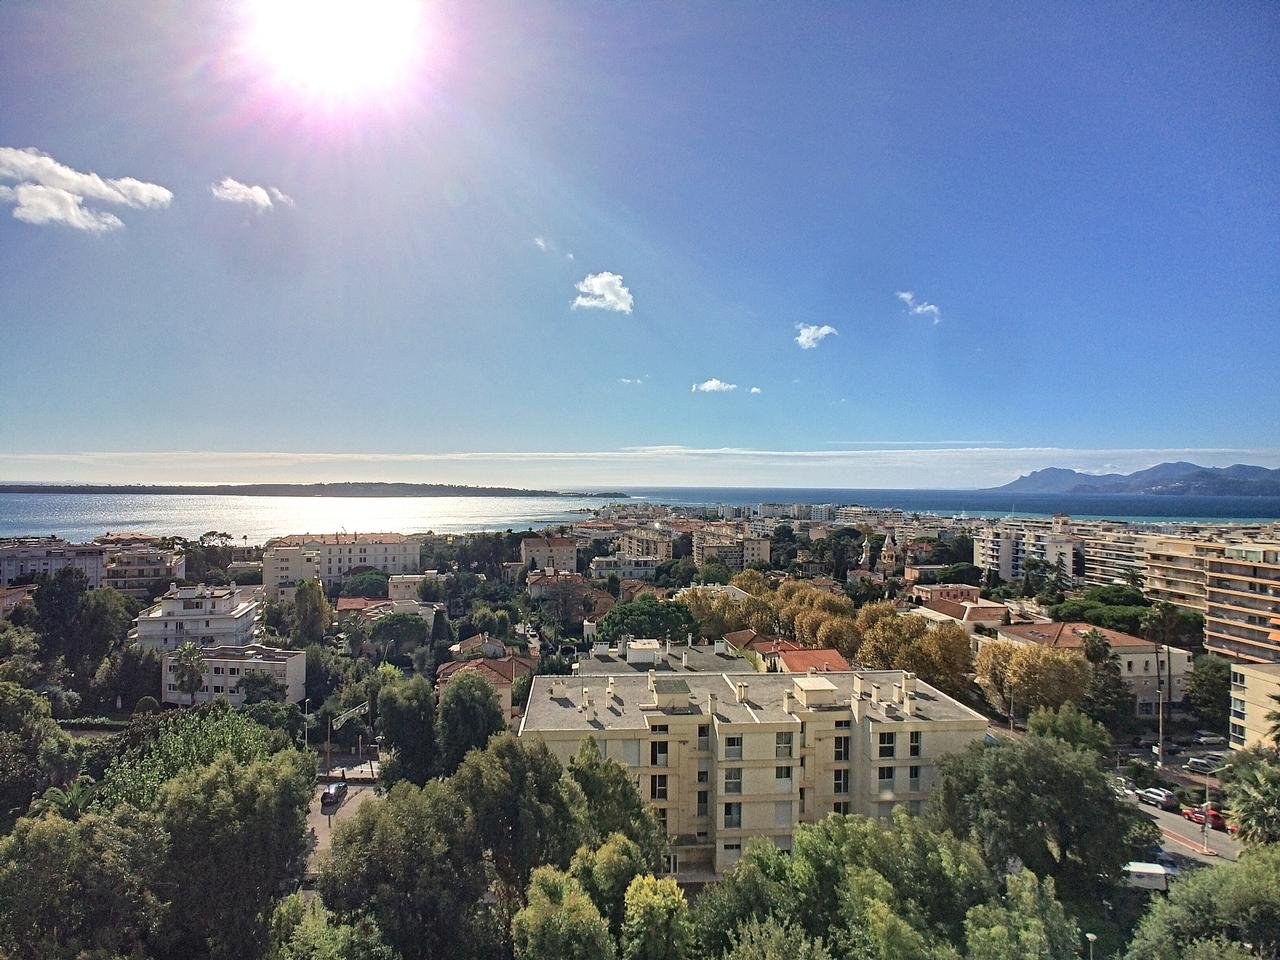 Magnificent apartment with panoramic sea view terrace, garage and cellar - Cannes Basse Californie